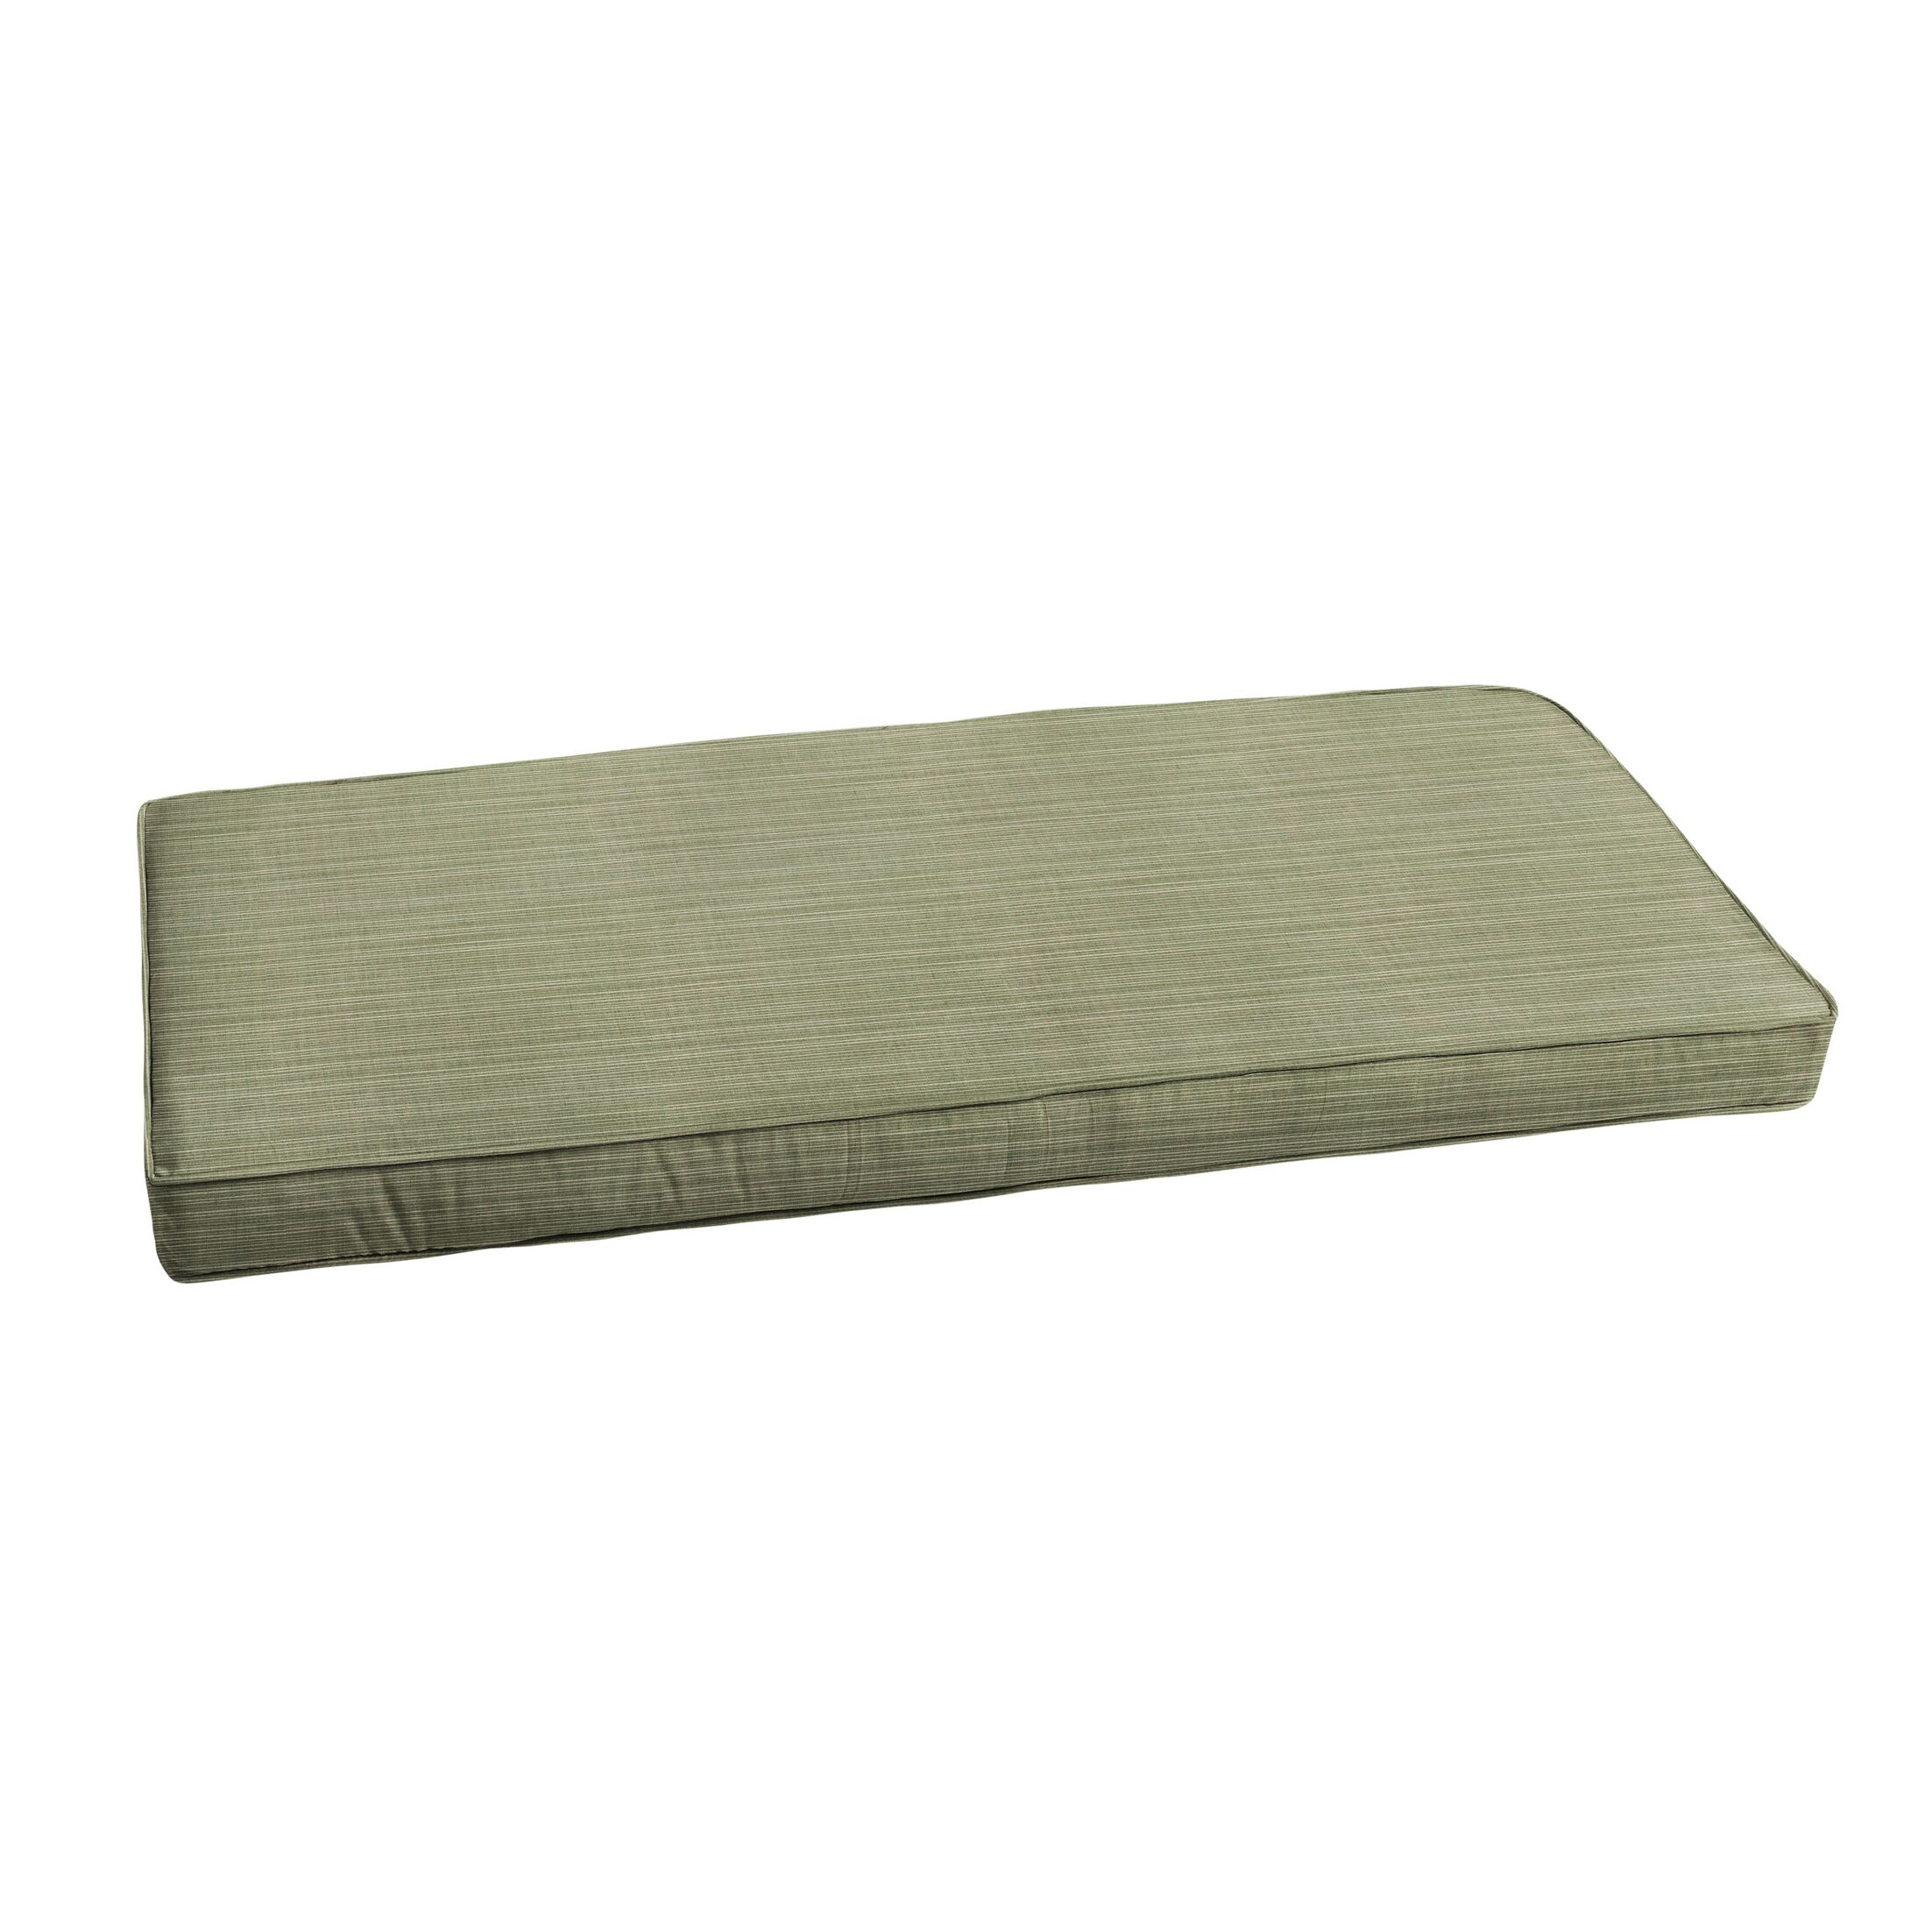 Textured Indoor/Outdoor Sunbrella Bench Cushion Size: 55